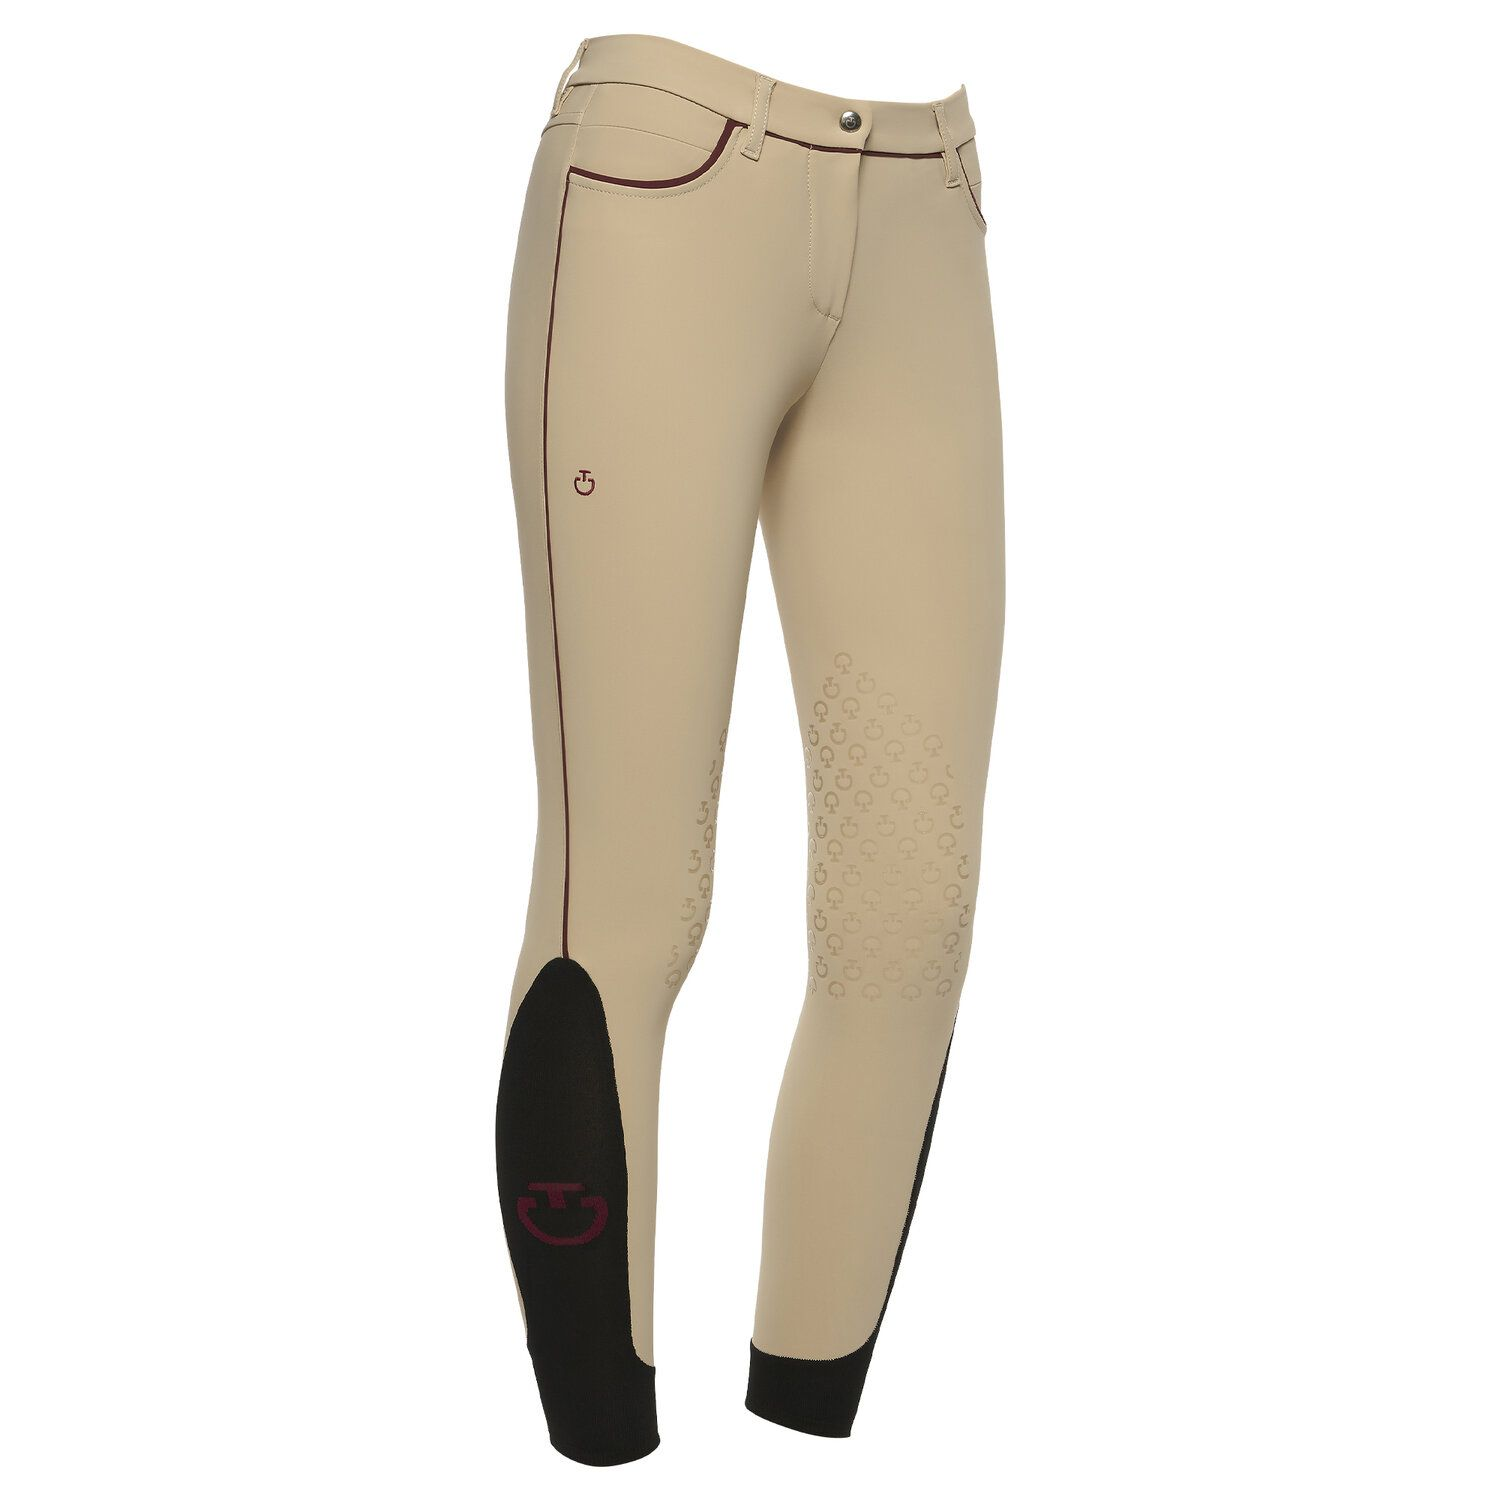 Women's contrasting piping riding breeches